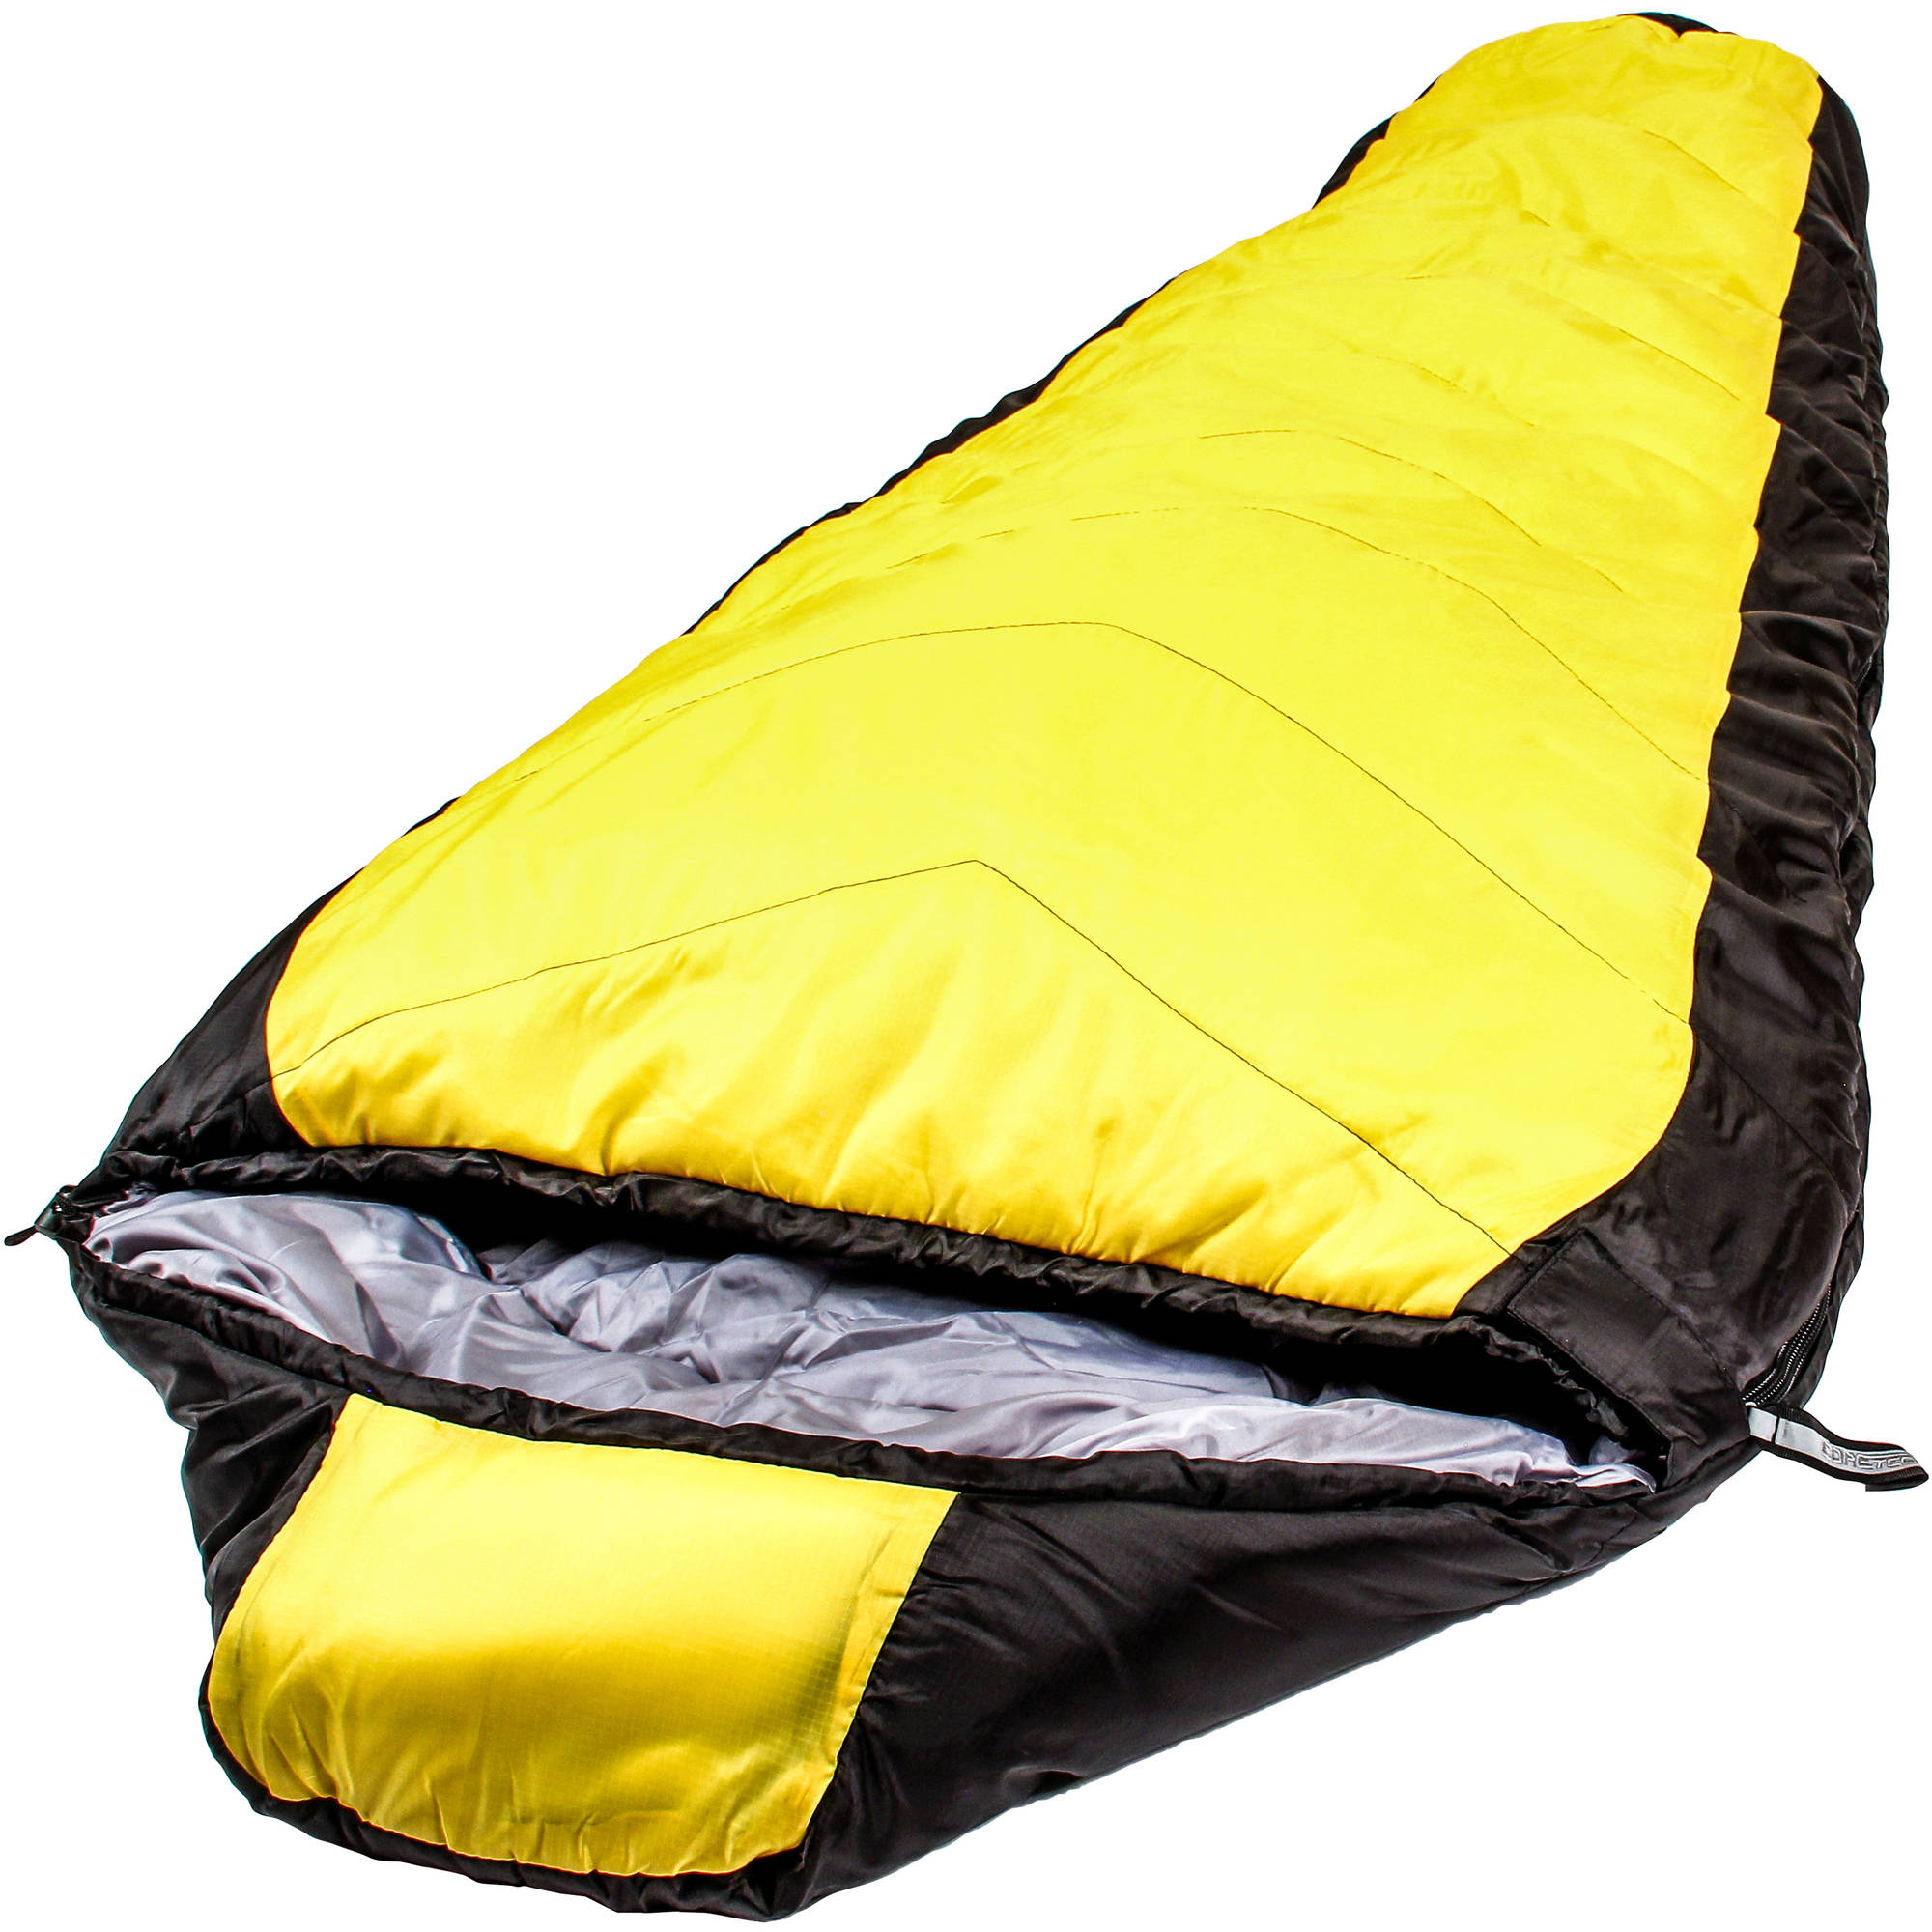 North Star 3.5 CoreTech Sleeping Bag, Yellow Black by Northstar Tactical